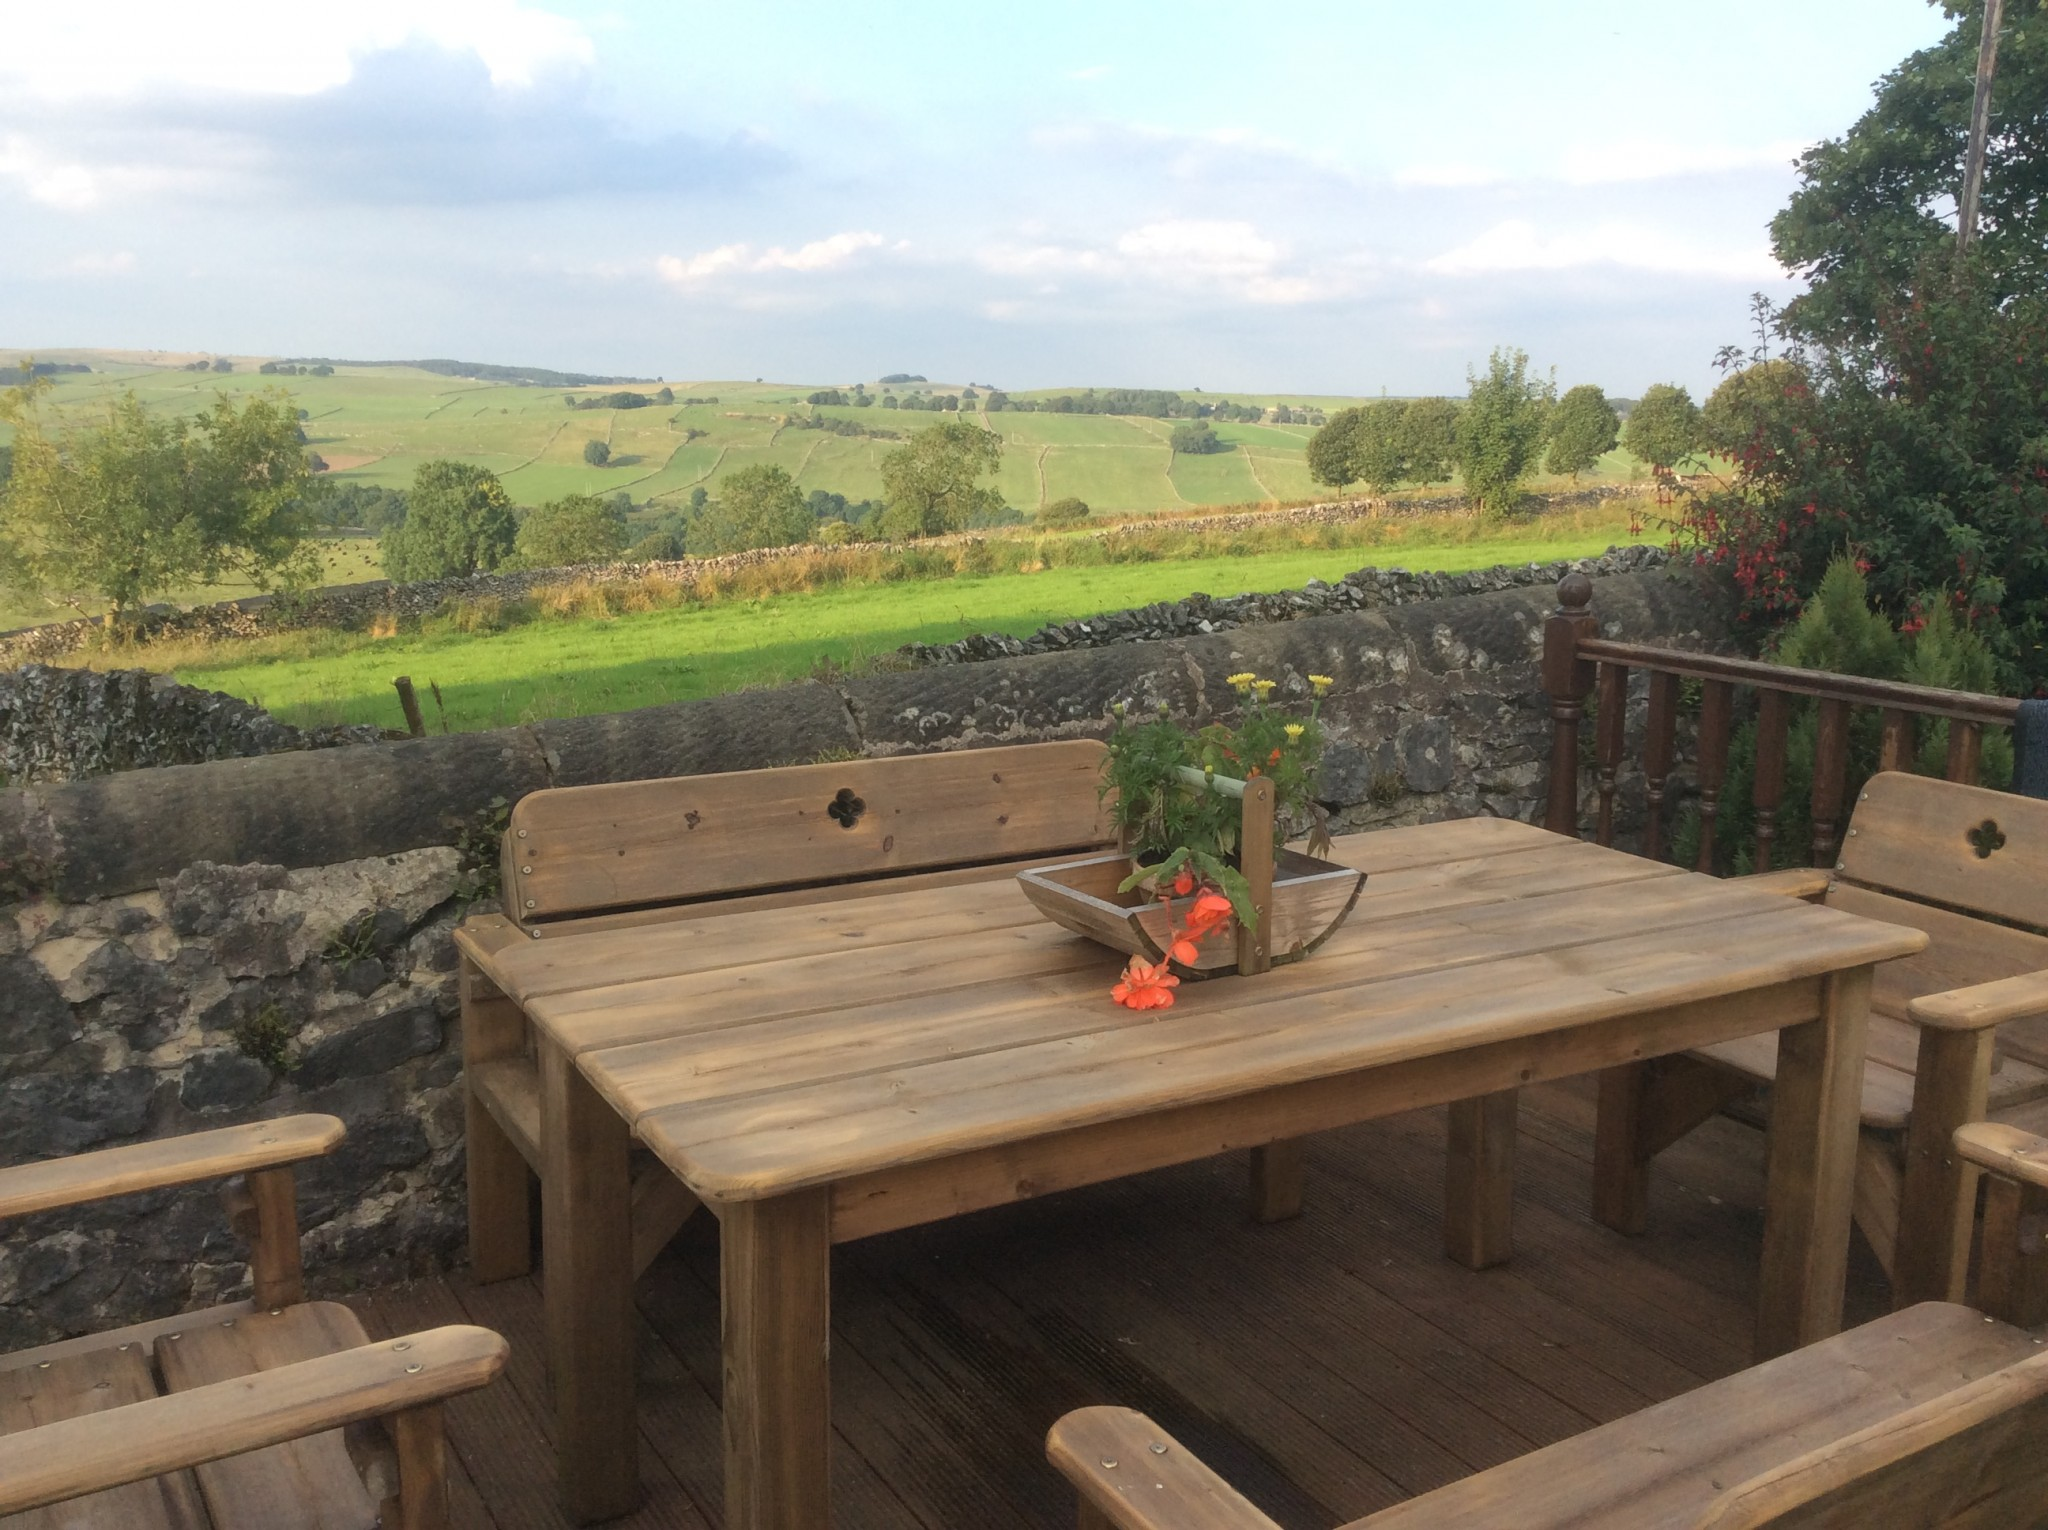 Superb rural views can be enjoyed from the cottage and decking.